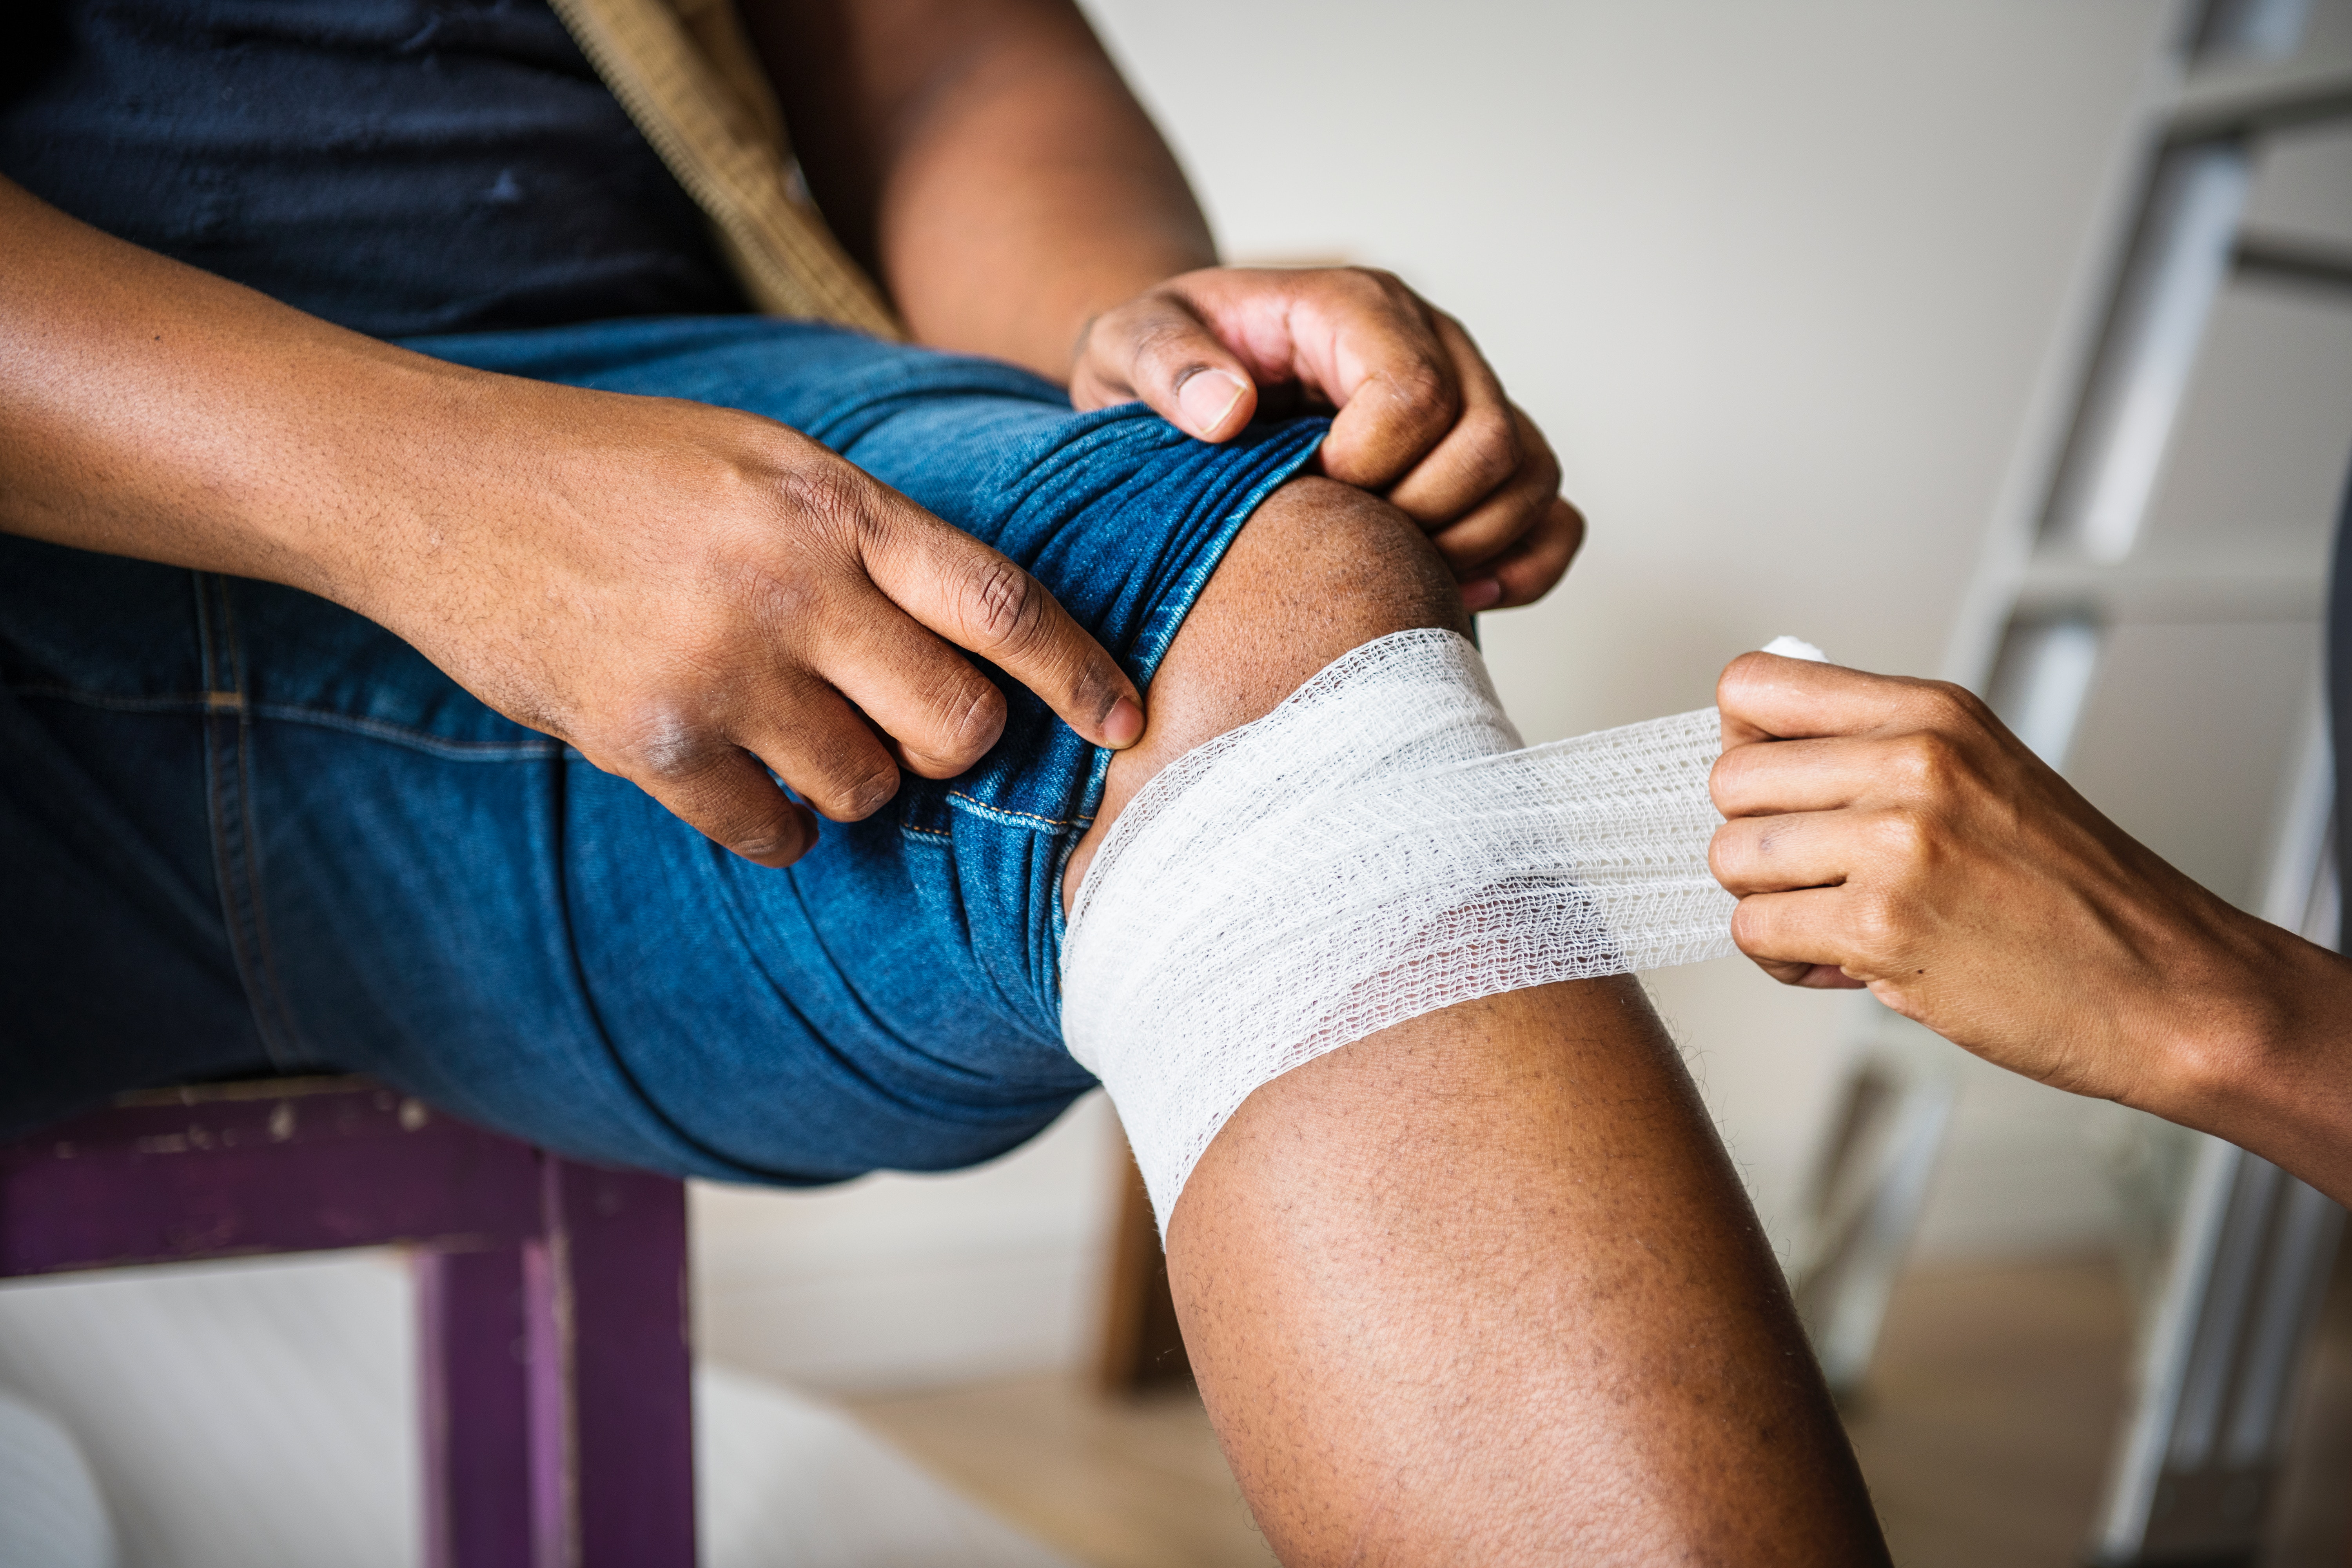 A Quick Overview of Partial Knee Replacement Surgery